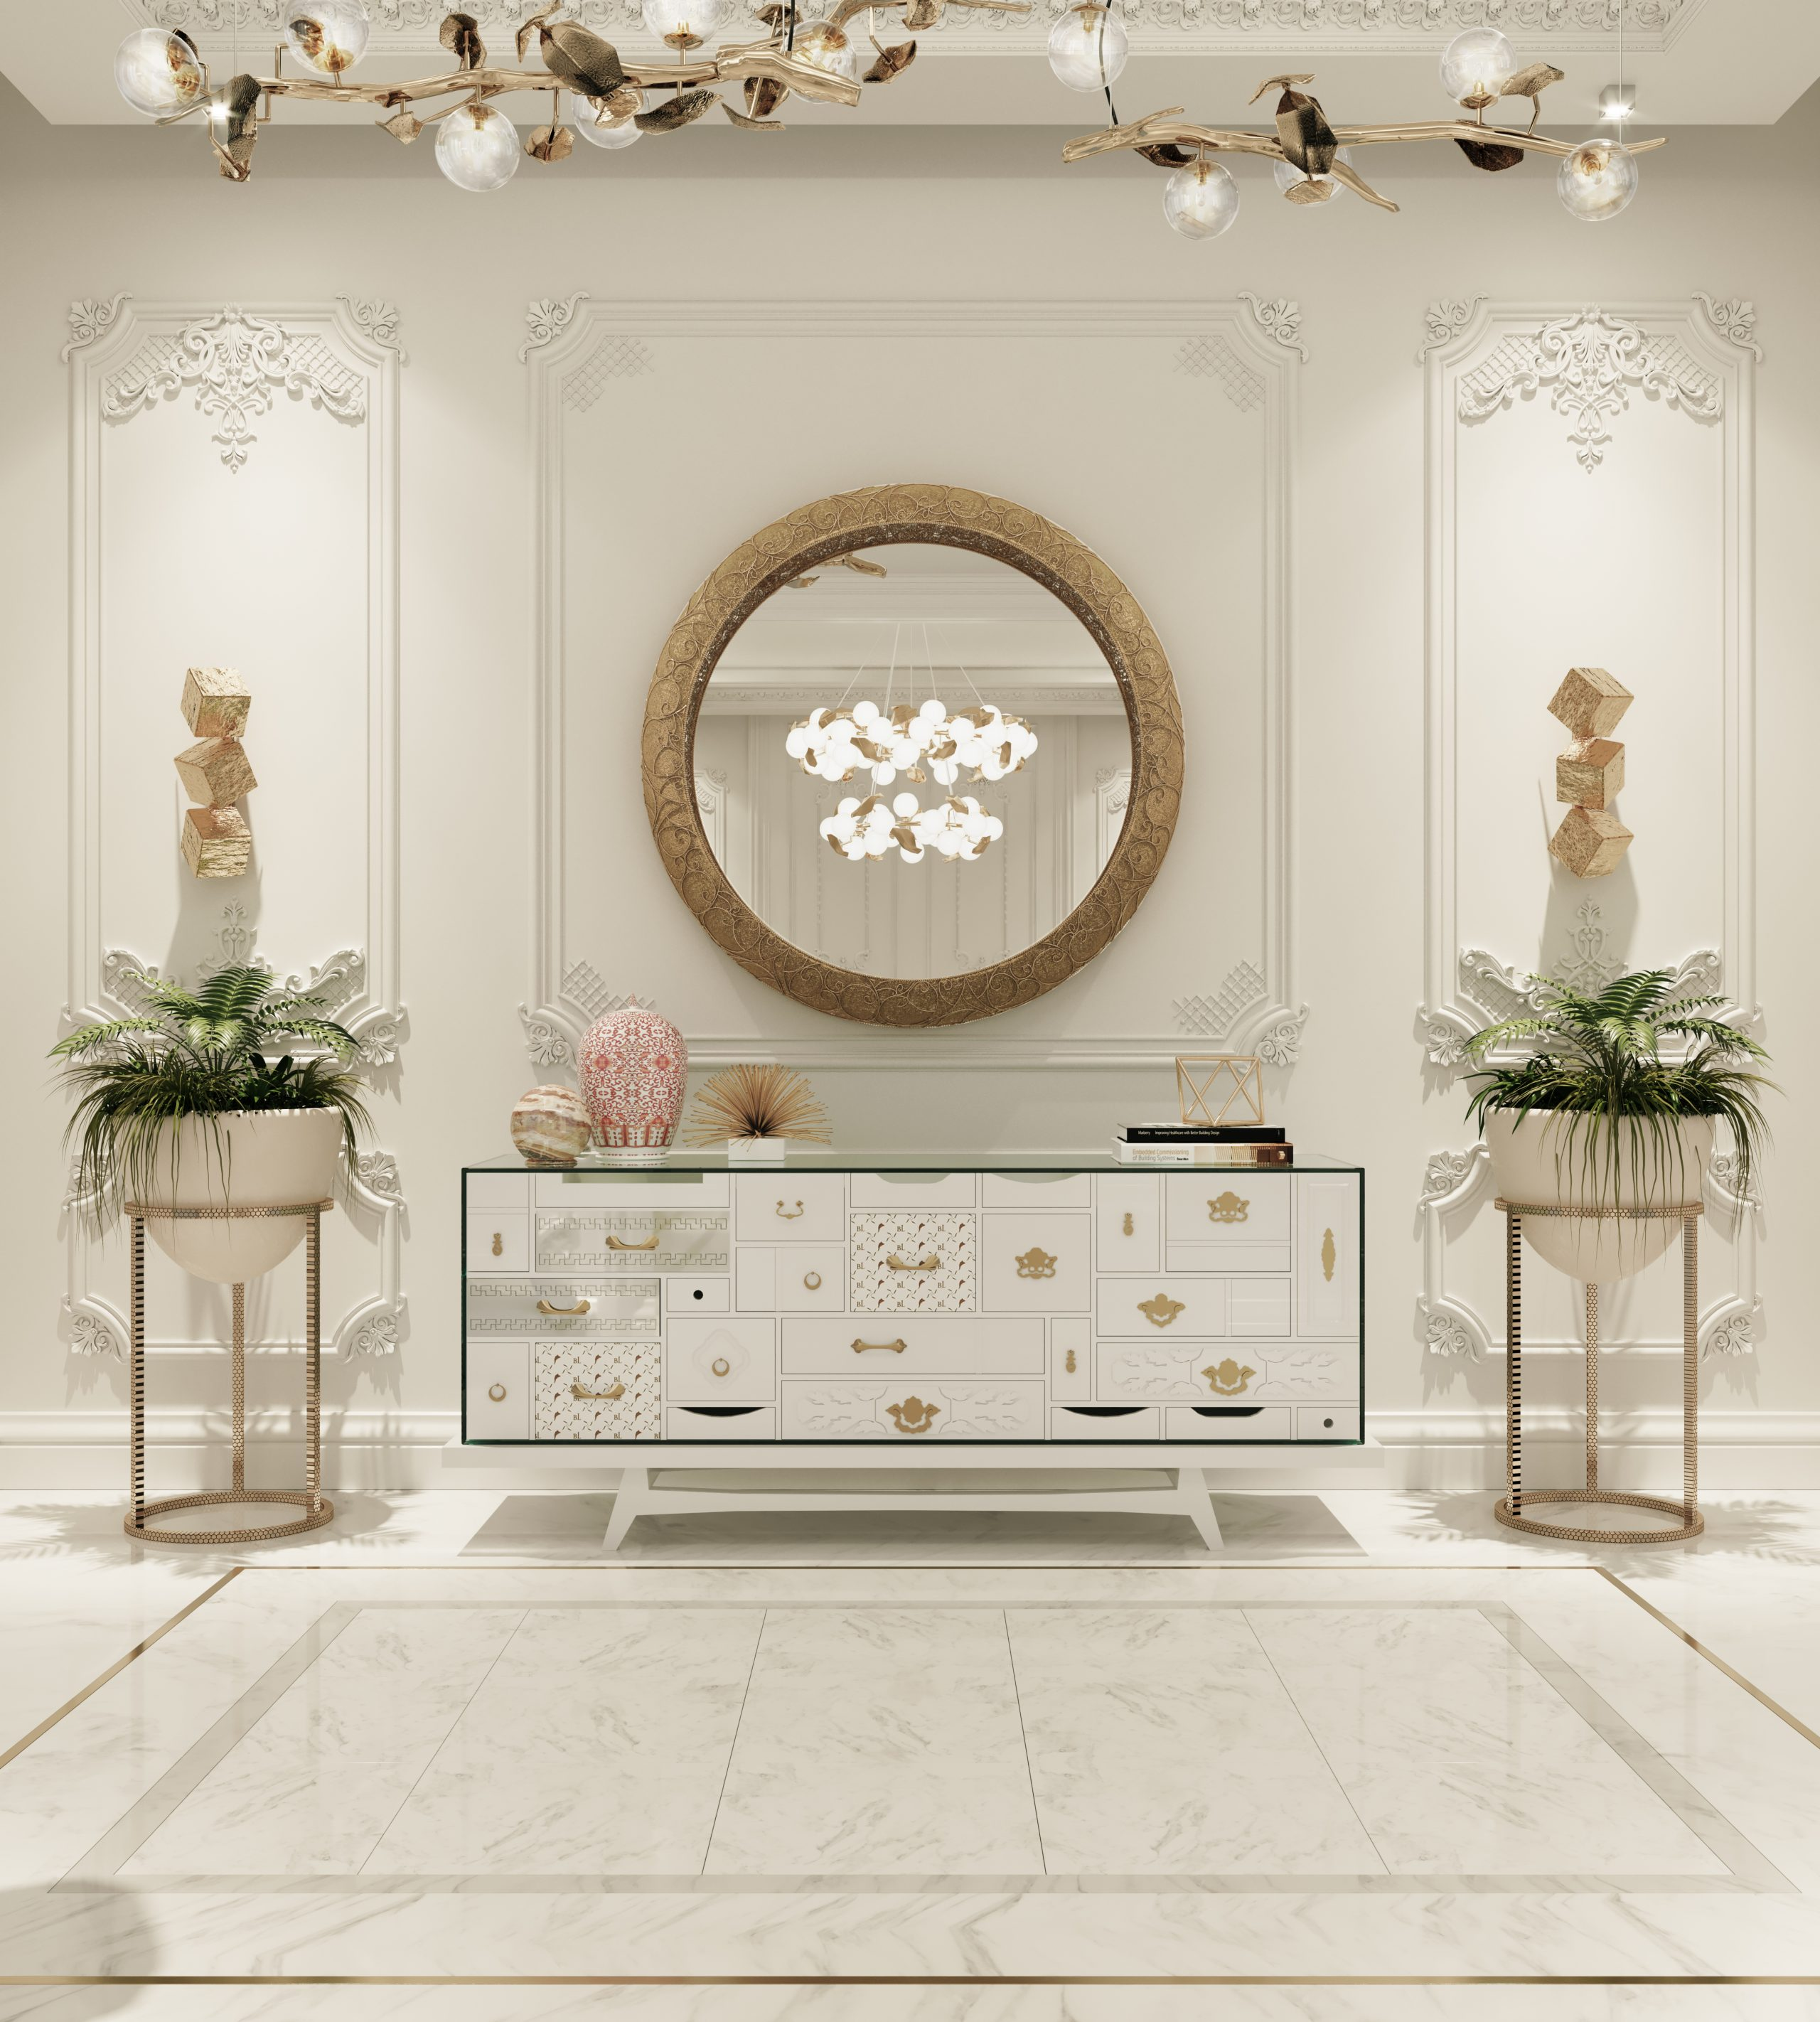 Blossom Your Interior Décor With These Exquisite Inspirations